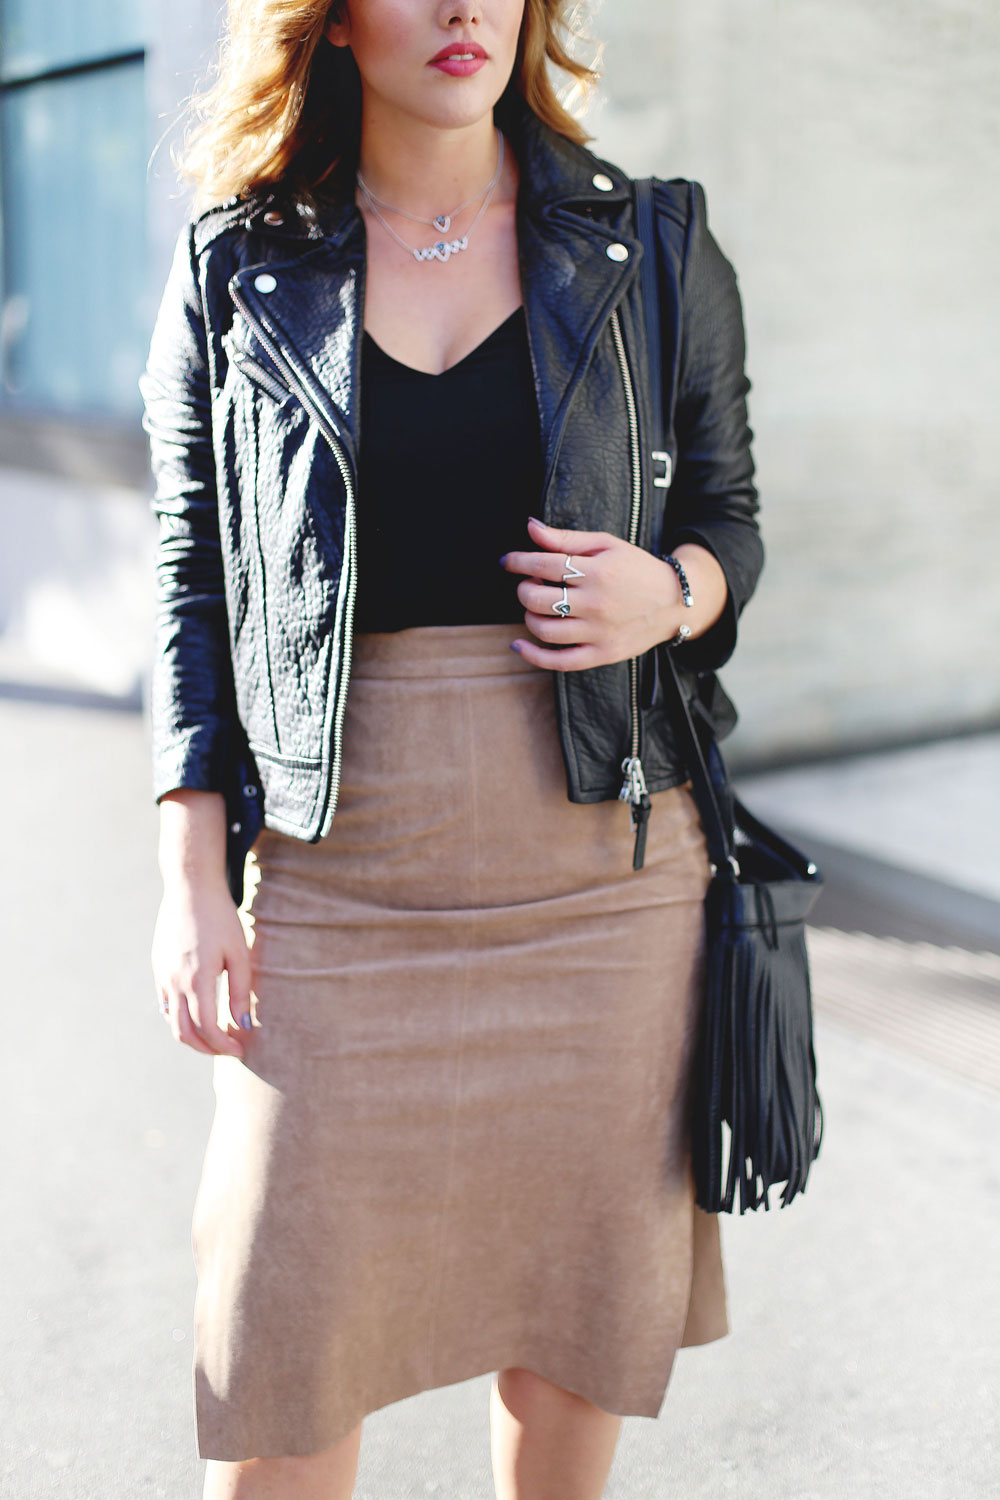 Edgy fall style tips: how to layer jewelry in Swarovski jewelry, Aritzia suede pencil skirt, Aritzia black camisole, Mackage leather jacket, Express black heels and Aritzia Wilfred fringe leather bag